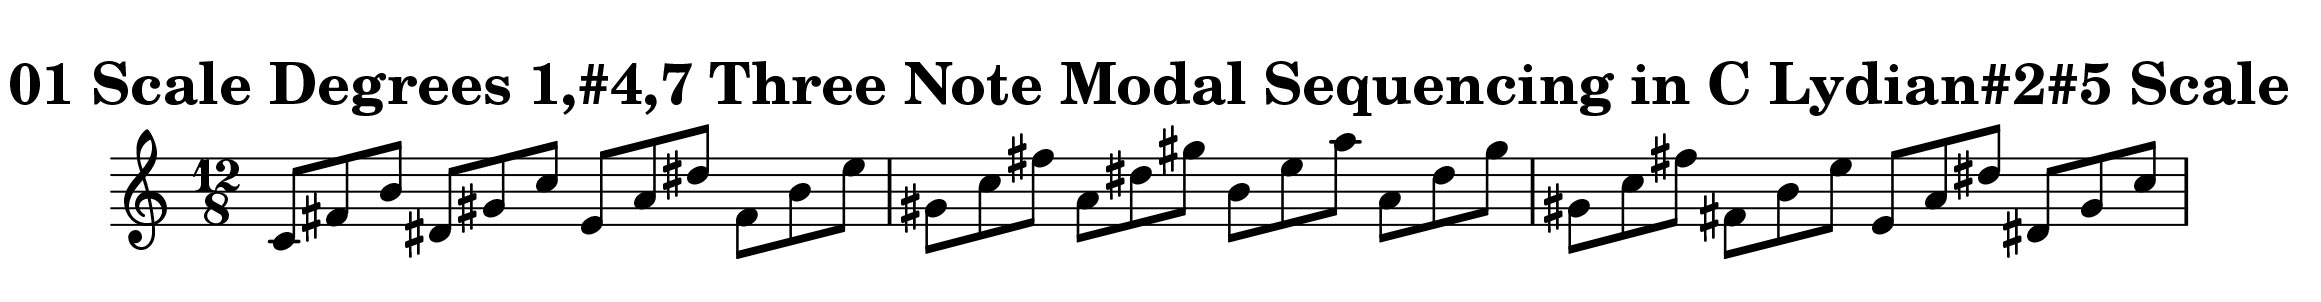 C Lydian#2#5 Scale Modal Sequencing 3 Note Group 4 for all instrumentalist by Bruce Arnold for Muse Eek Publishing Company